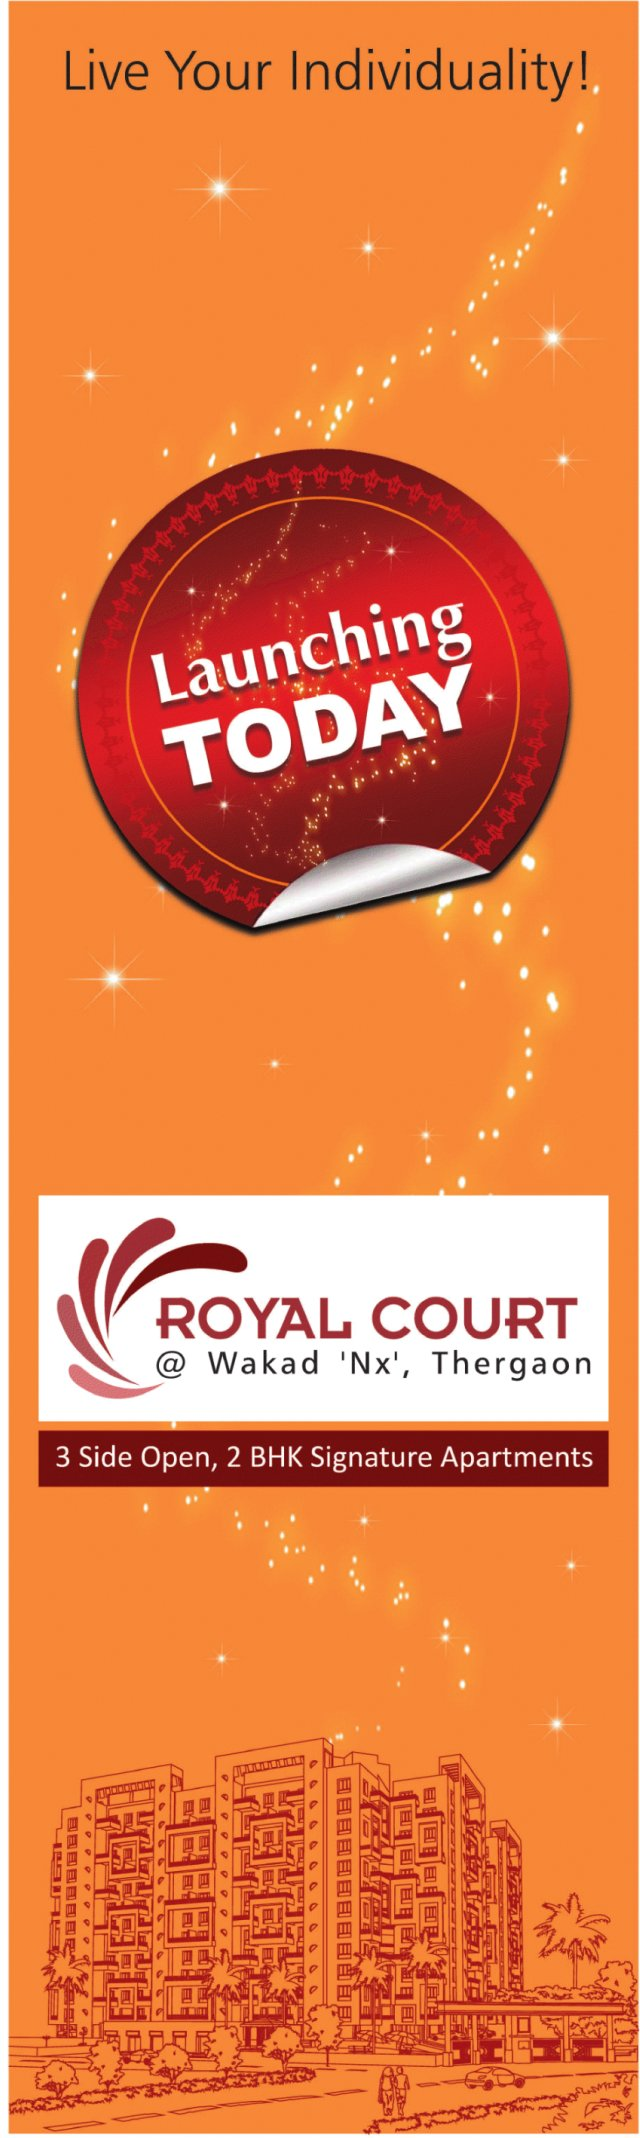 royal-court-wakad-pune